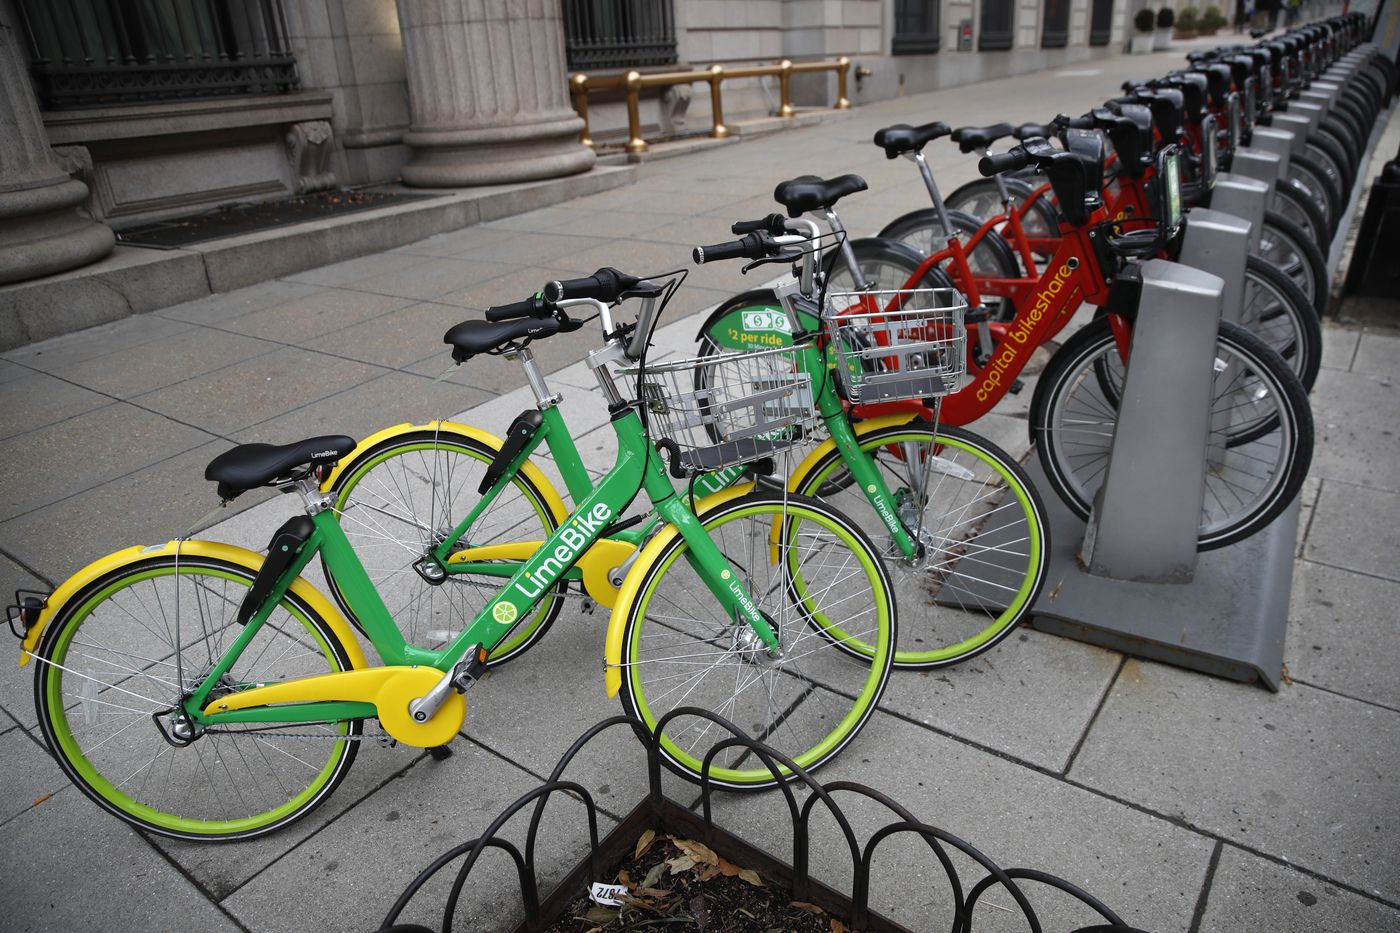 As scooters, bikes, and transit startups flood the streets